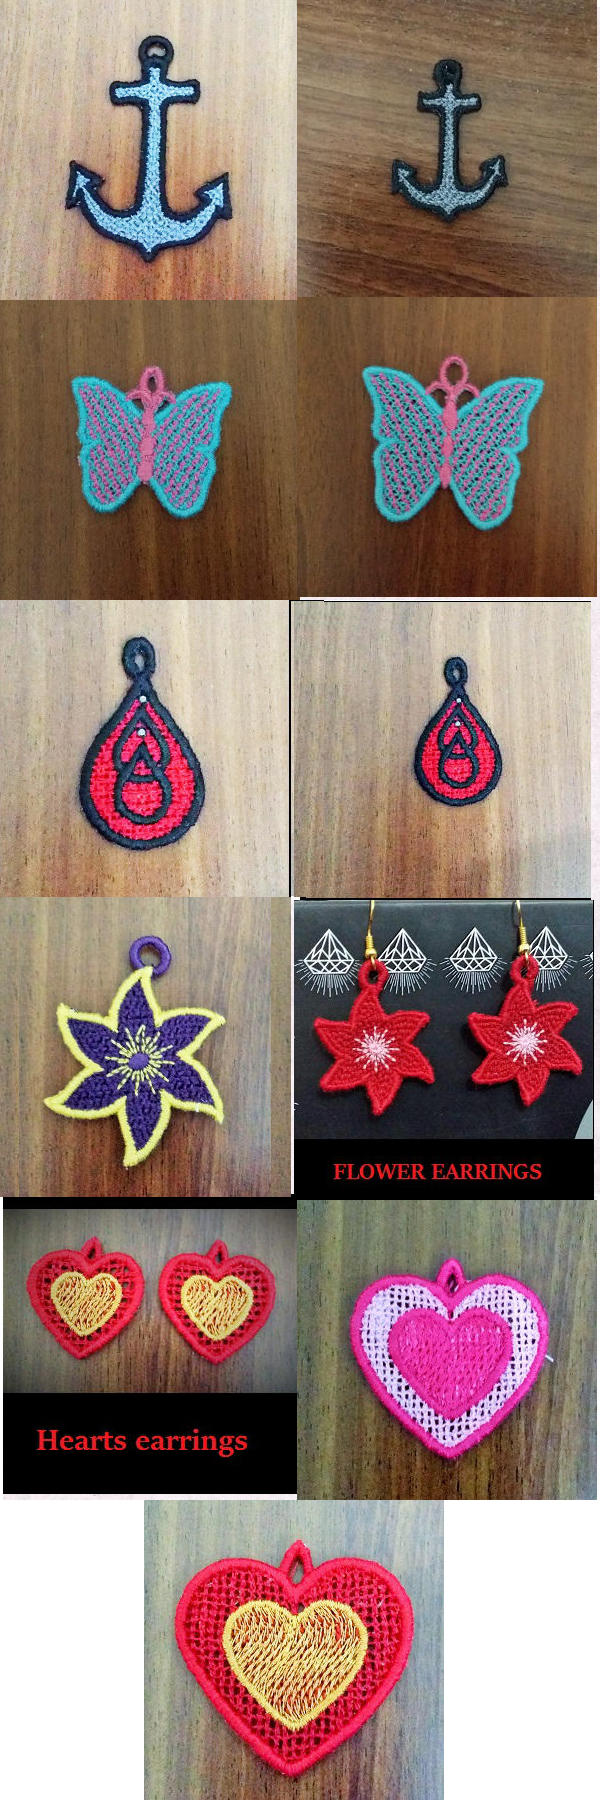 FSL Earrings Charms and Pendants Embroidery Machine Design Details